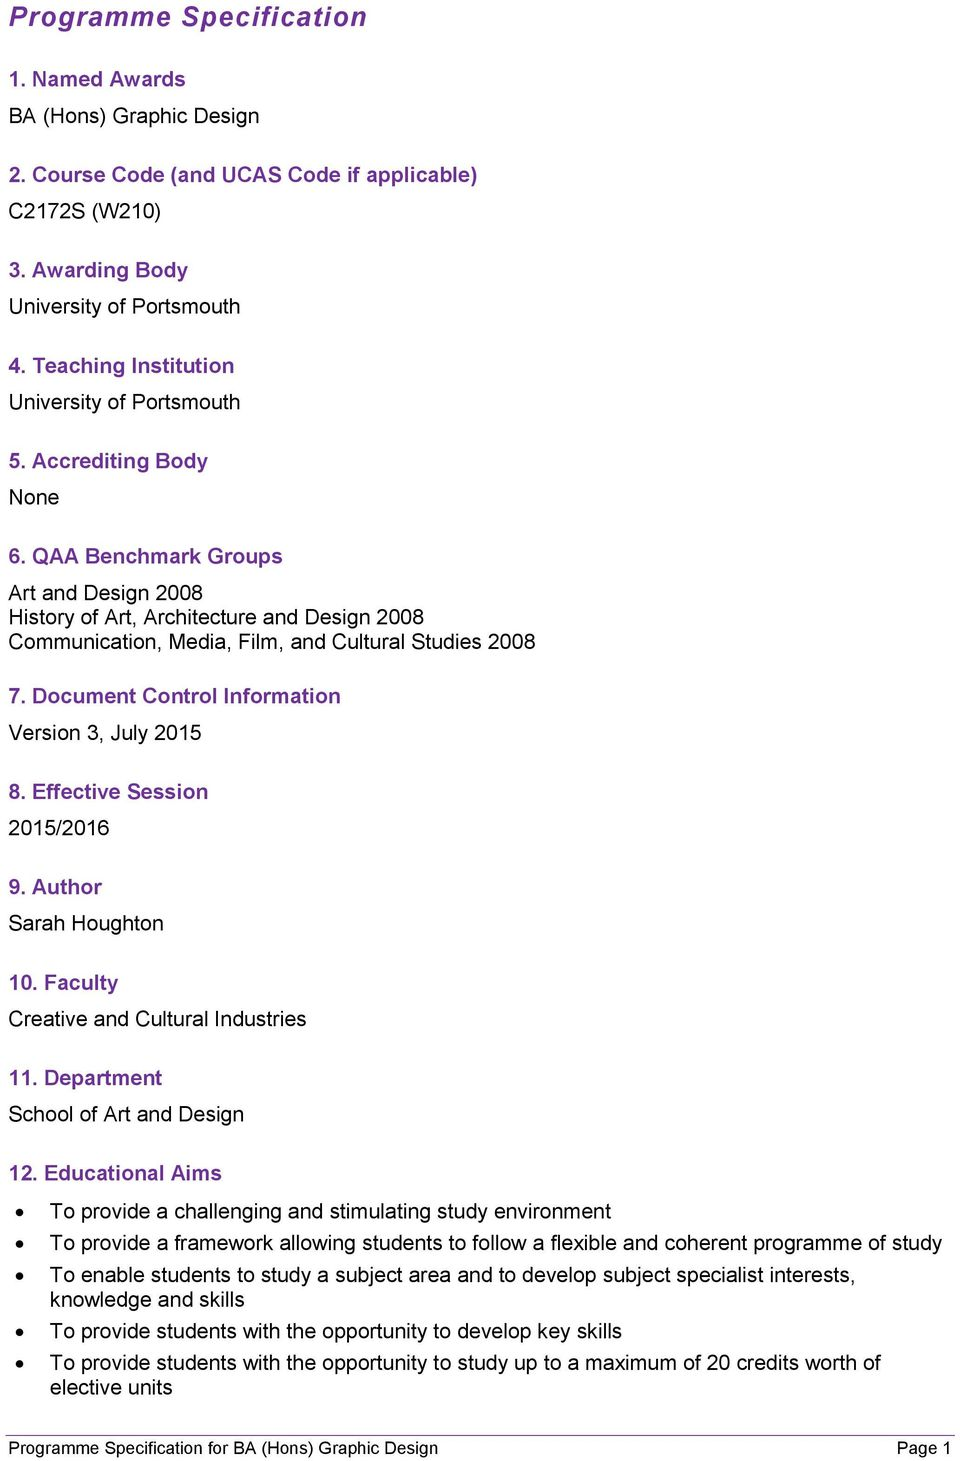 QAA Benchmark Groups Art and Design 2008 History of Art, Architecture and Design 2008 Communication, Media, Film, and Cultural Studies 2008 7. Document Control Information Version 3, July 2015 8.